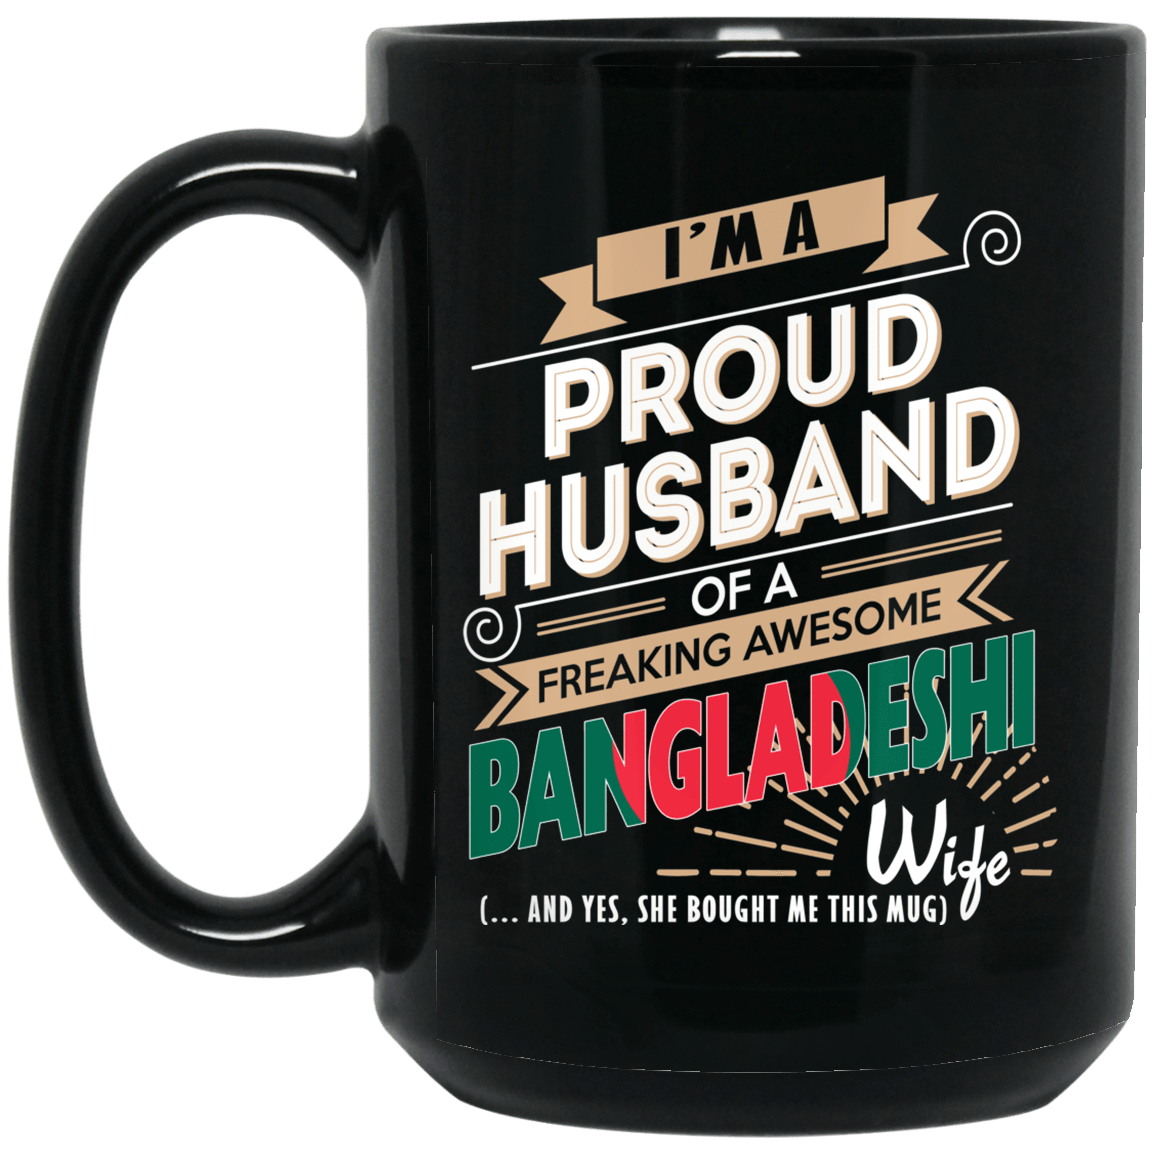 Proud Husband Of A Freaking Awesome Bangladeshi Wife Mug 1066-10182-72136608-49311 - Tee Ript